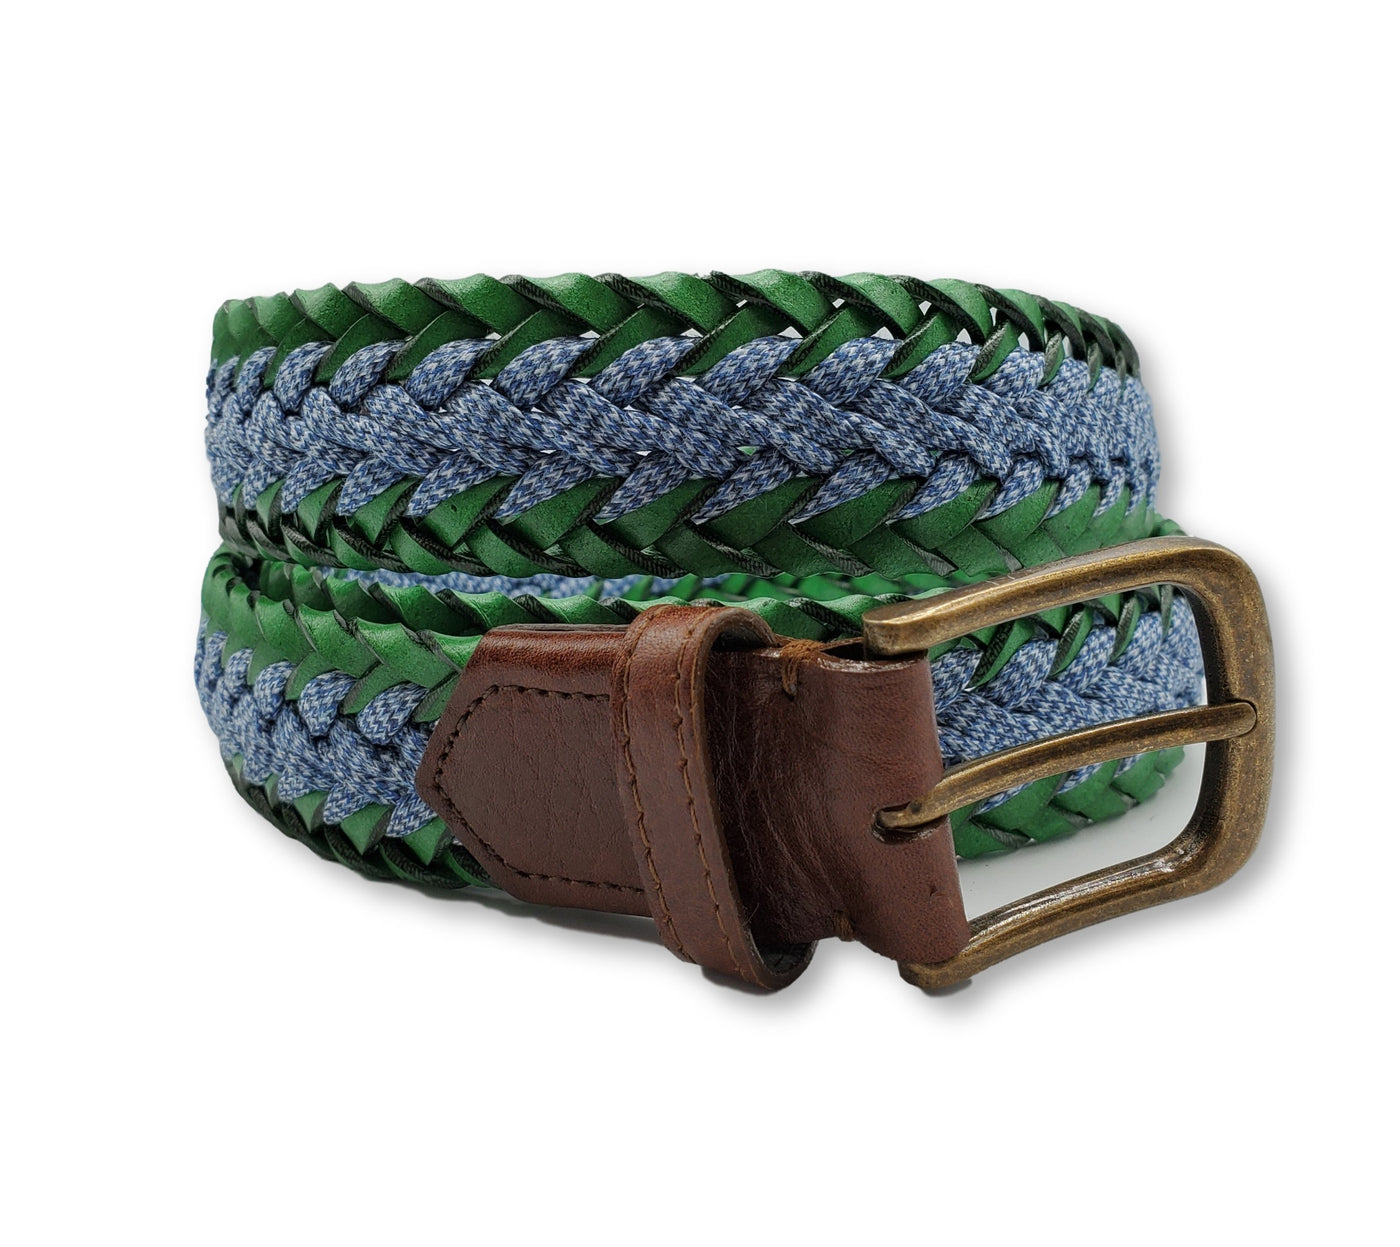 Braided Blue and Green Belt - FH Wadsworth